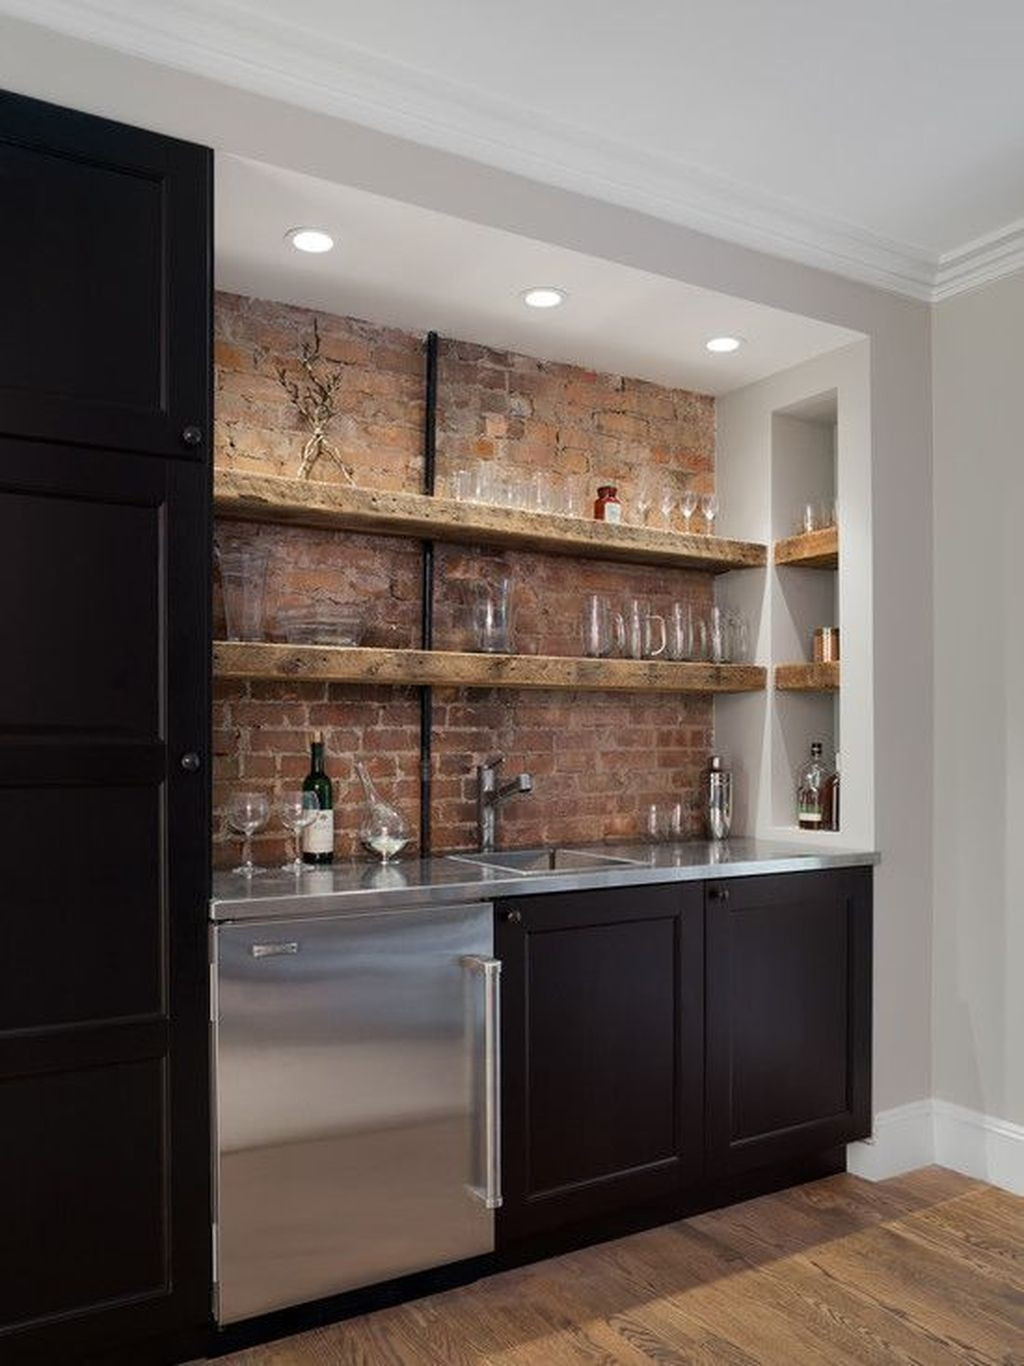 Comfy Kitchen Remodel Ideas For Small Kitchen29